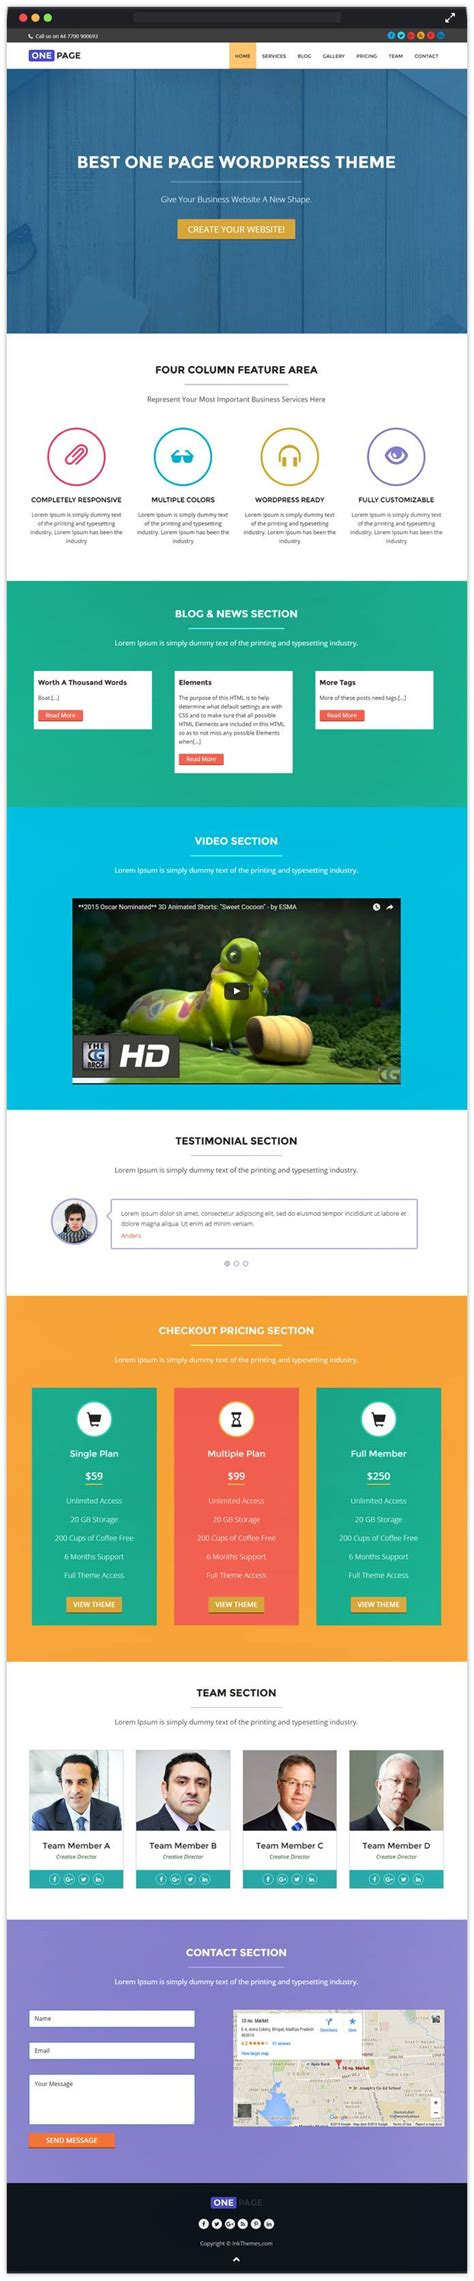 themes creator website change background color single page wordpress coloring